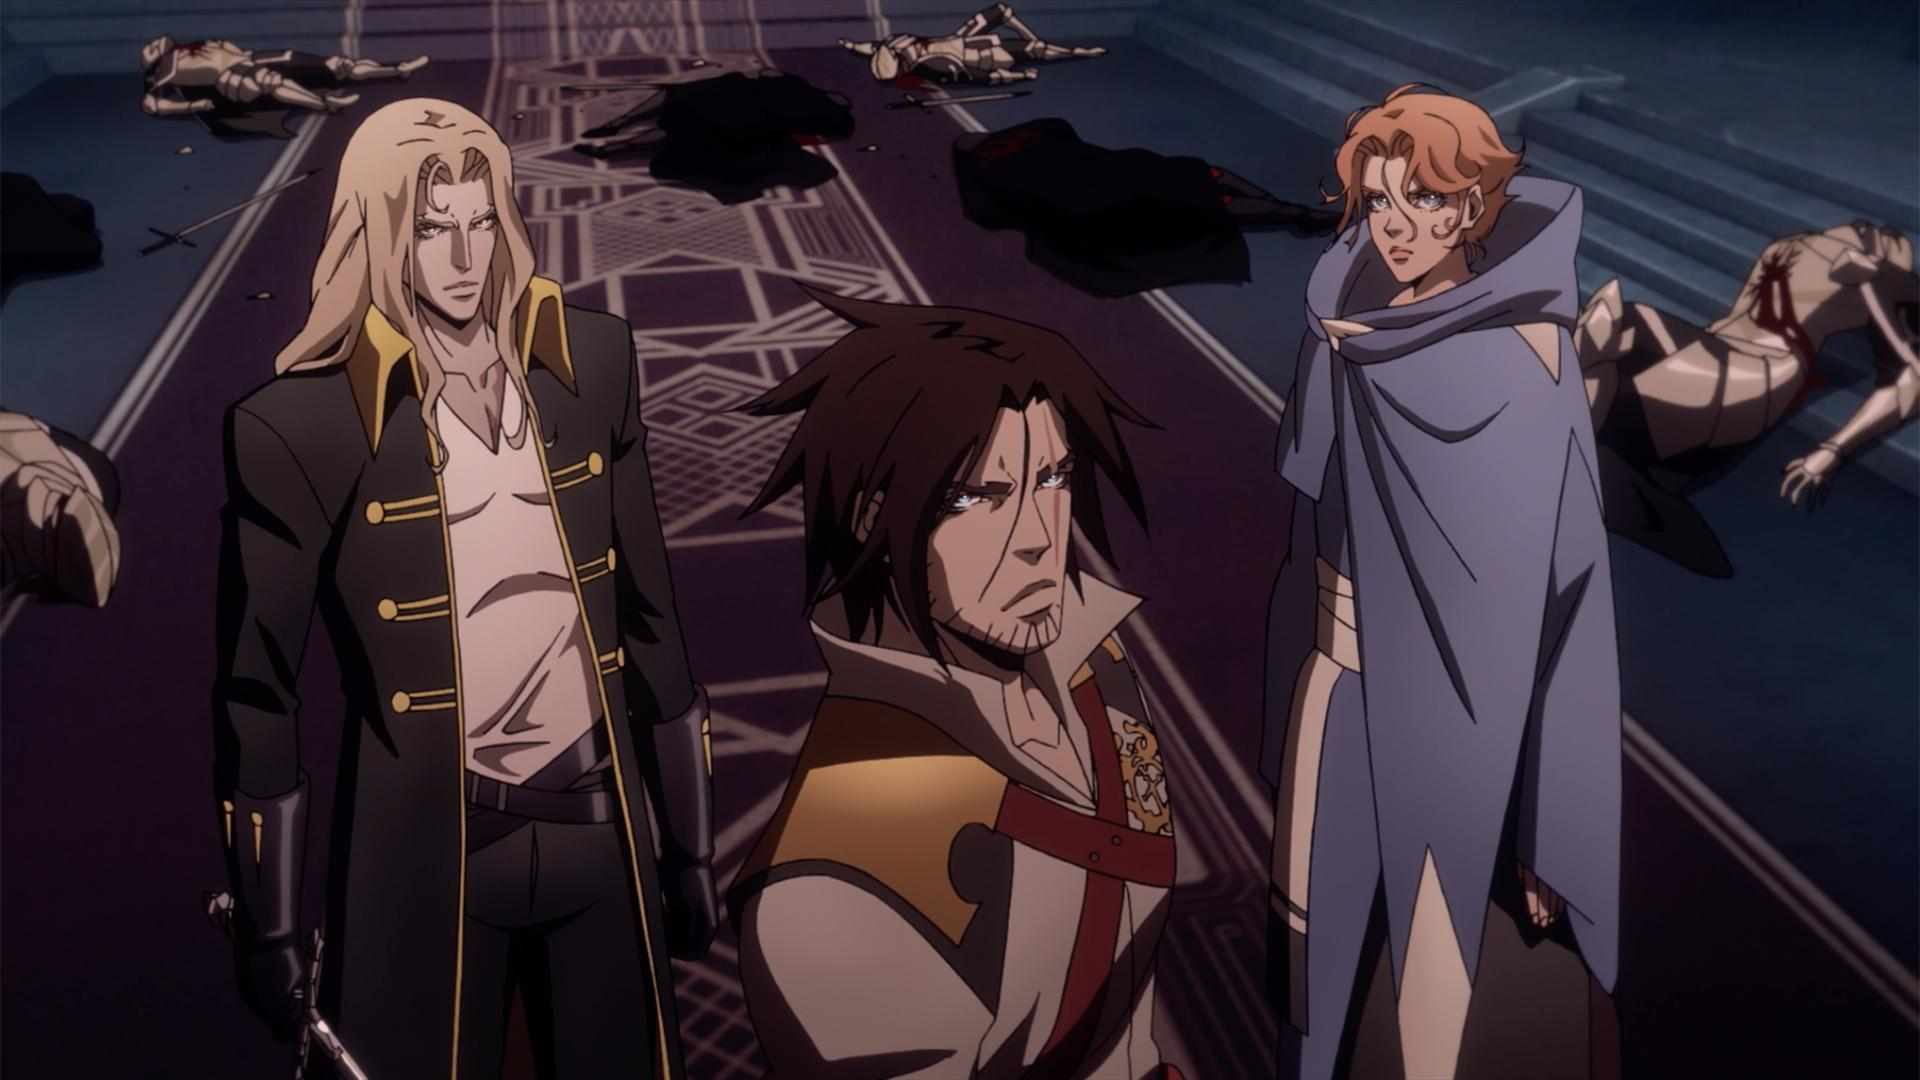 The leads of Castlevania get ready to kick some vampiric ass